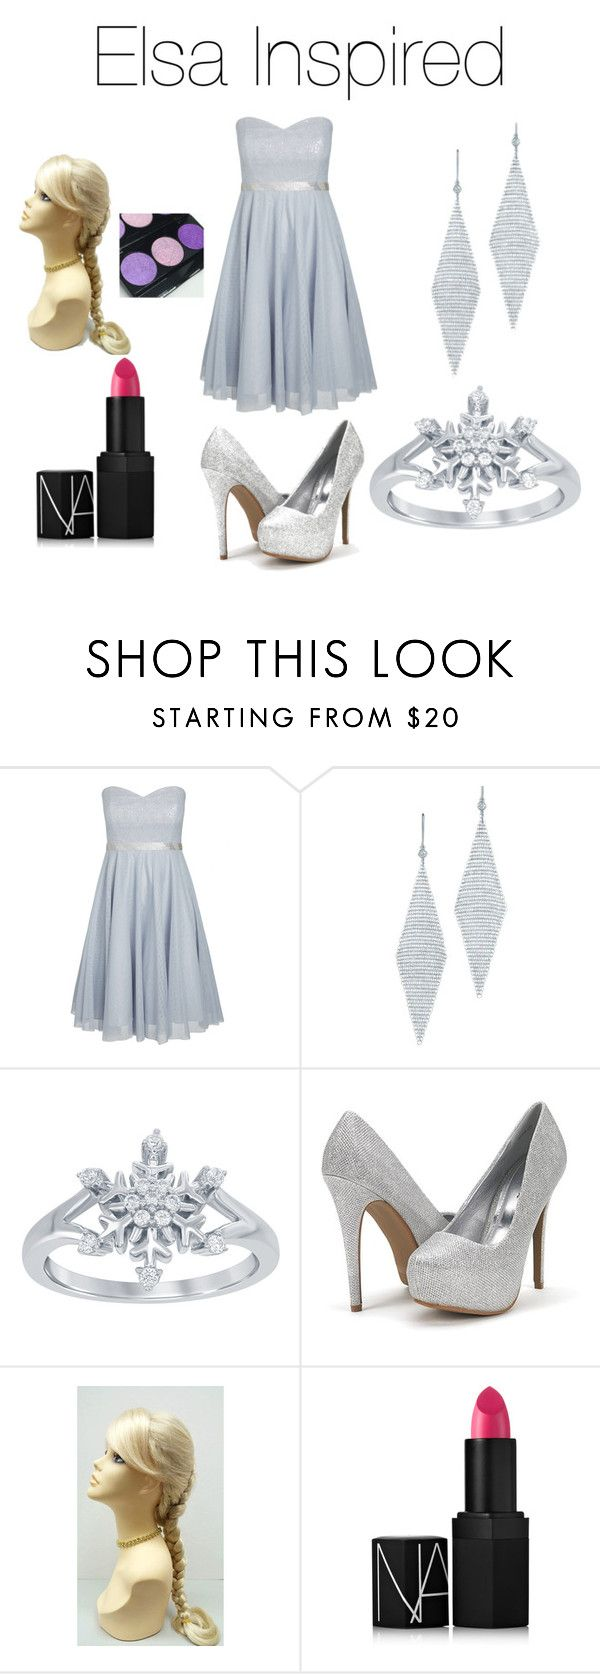 """""""Queen Elsa!❄️"""" by jazzrodgers ❤ liked on Polyvore featuring City Chic, Tiffany & Co., Disney, NARS Cosmetics and plus size dresses"""